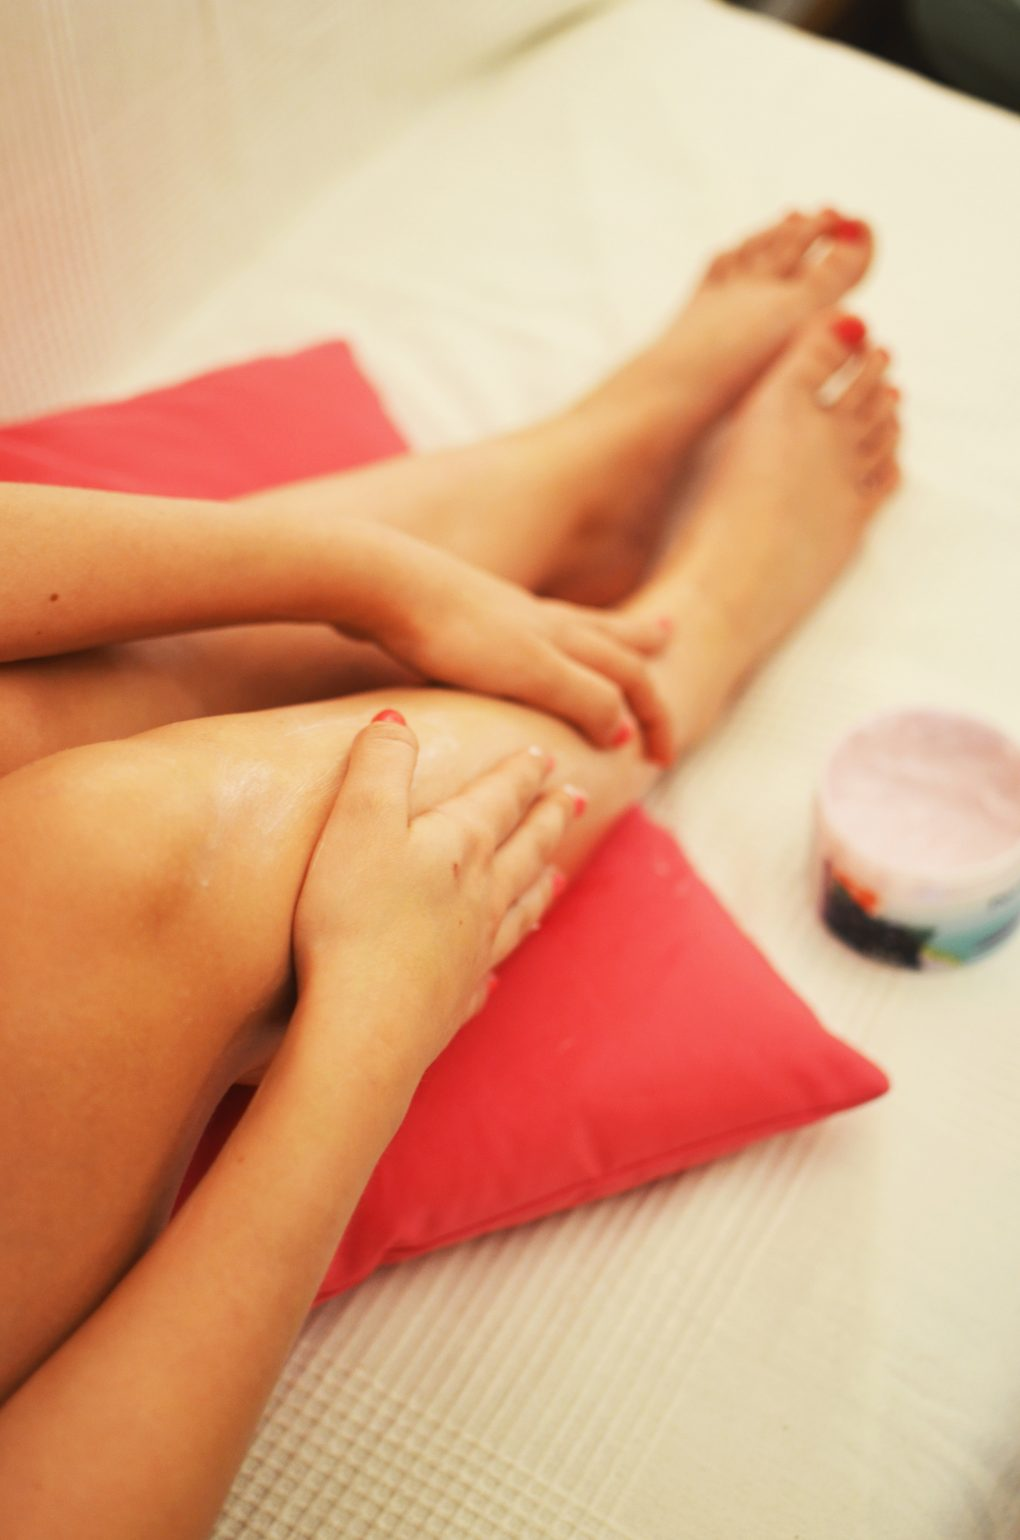 woman holding her bare leg after waxing or moisturising